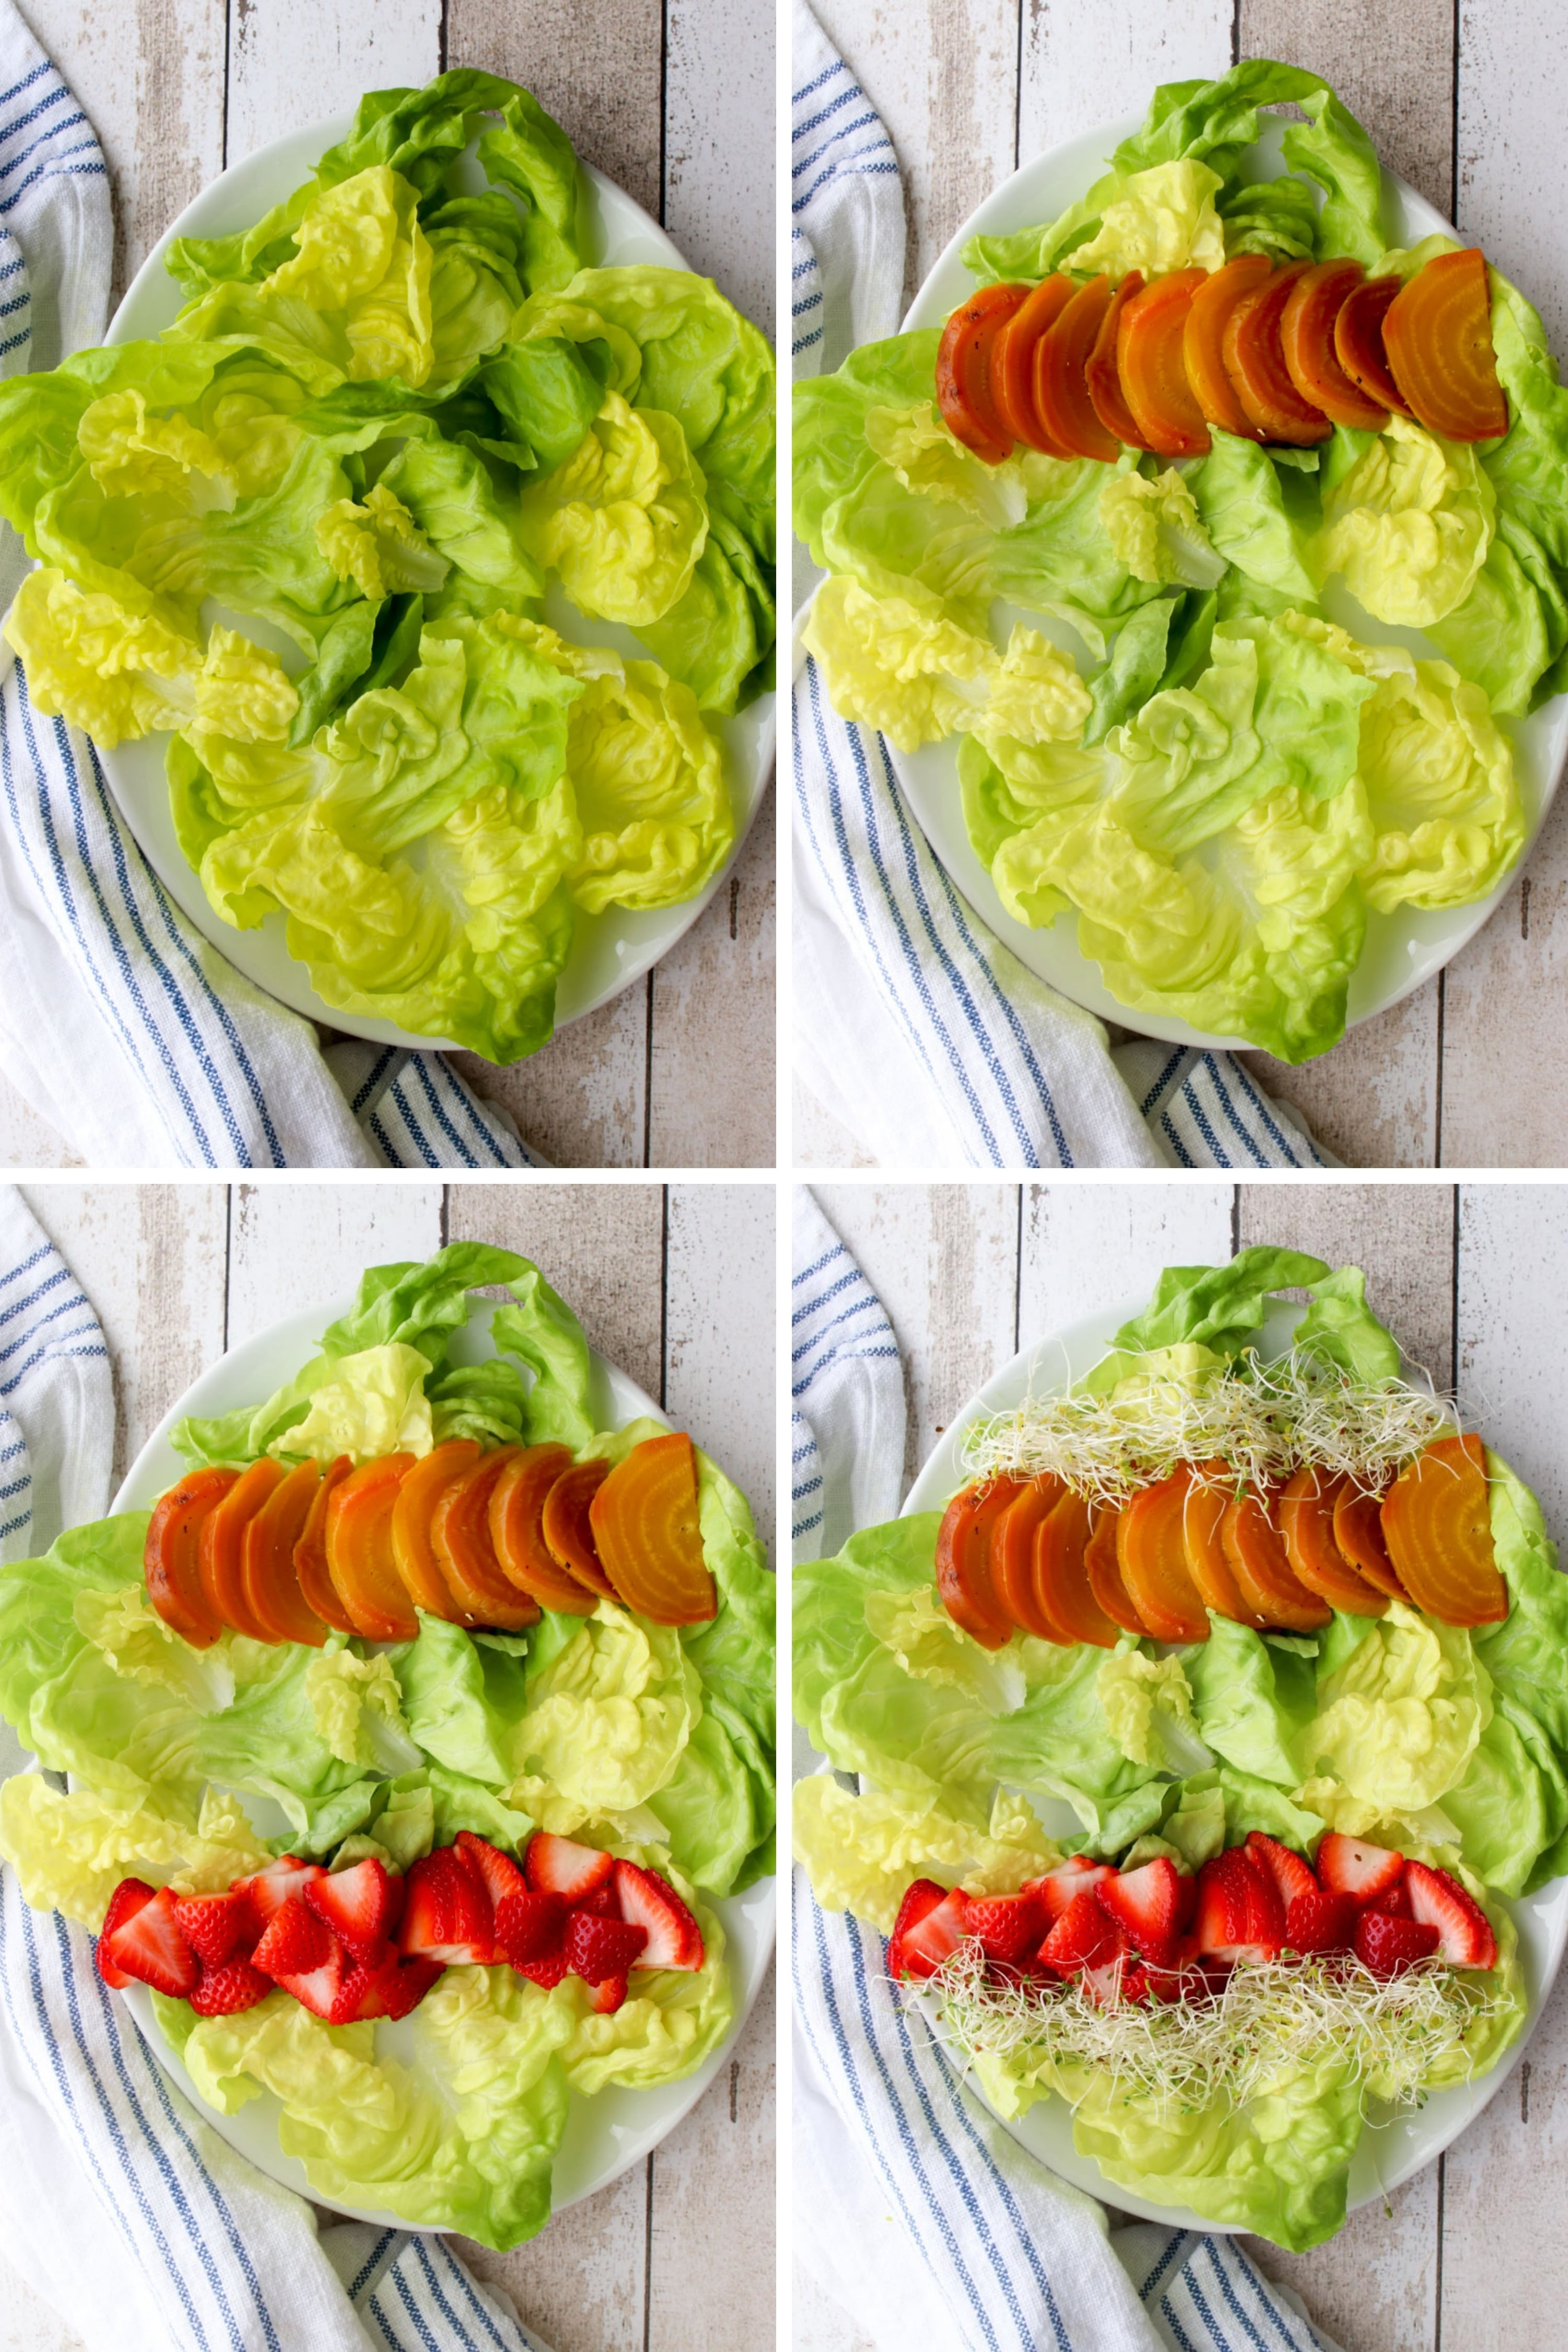 Collage showing how to assemble the spring salad